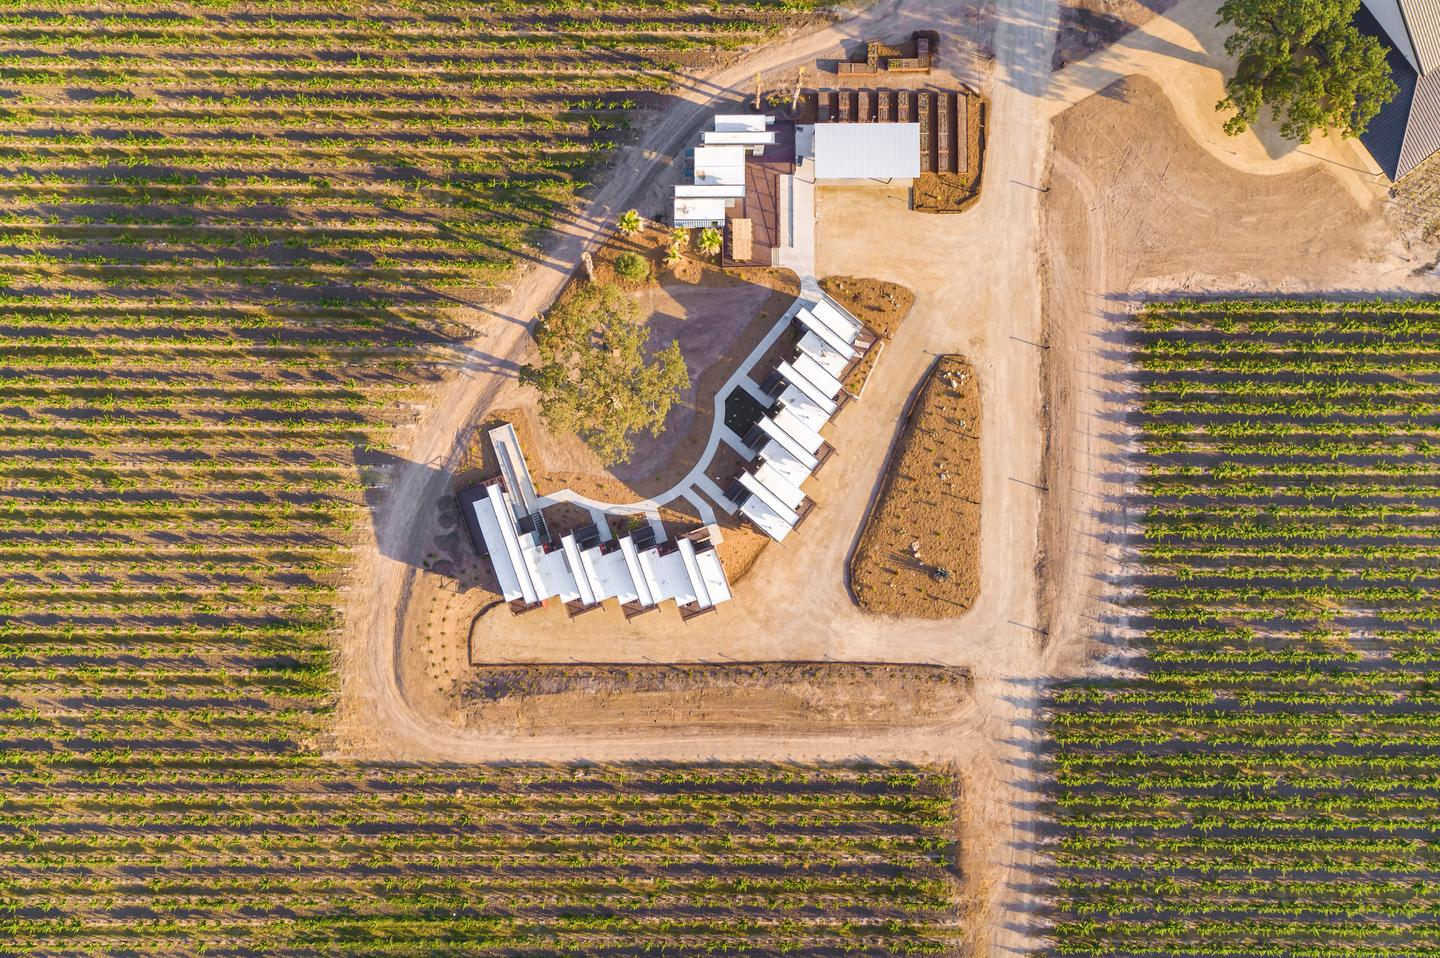 The Geneseo Inn is situated among 145 acres (58 hectares) of rolling vineyards in central California